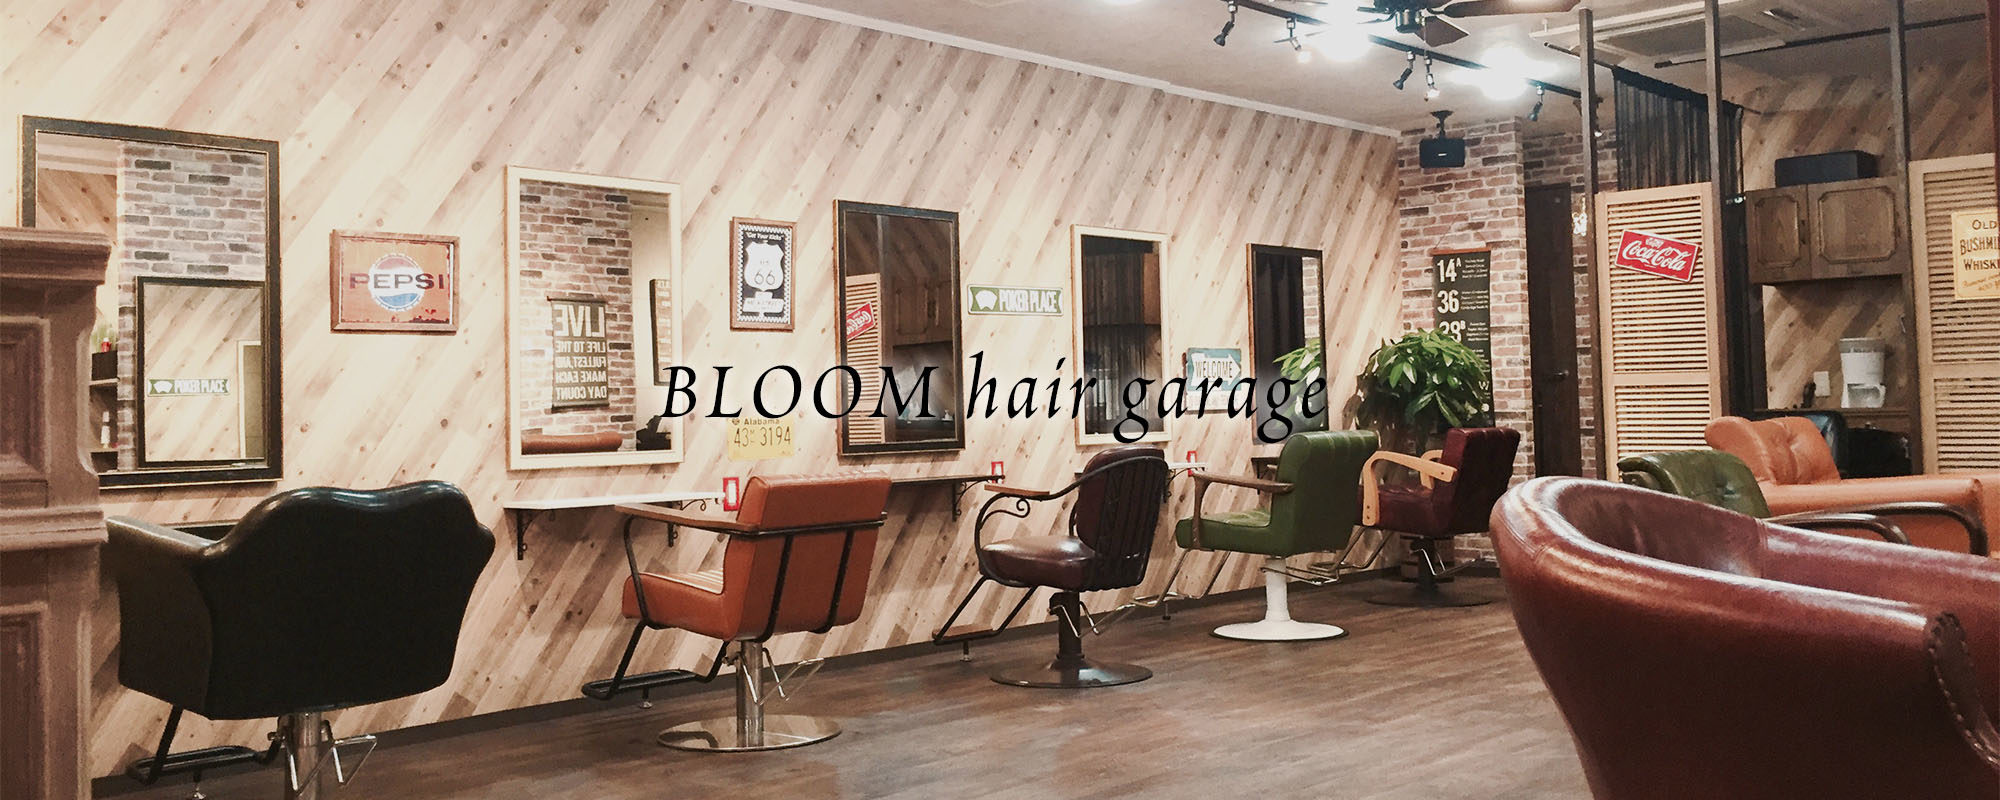 BLOOM hair garage